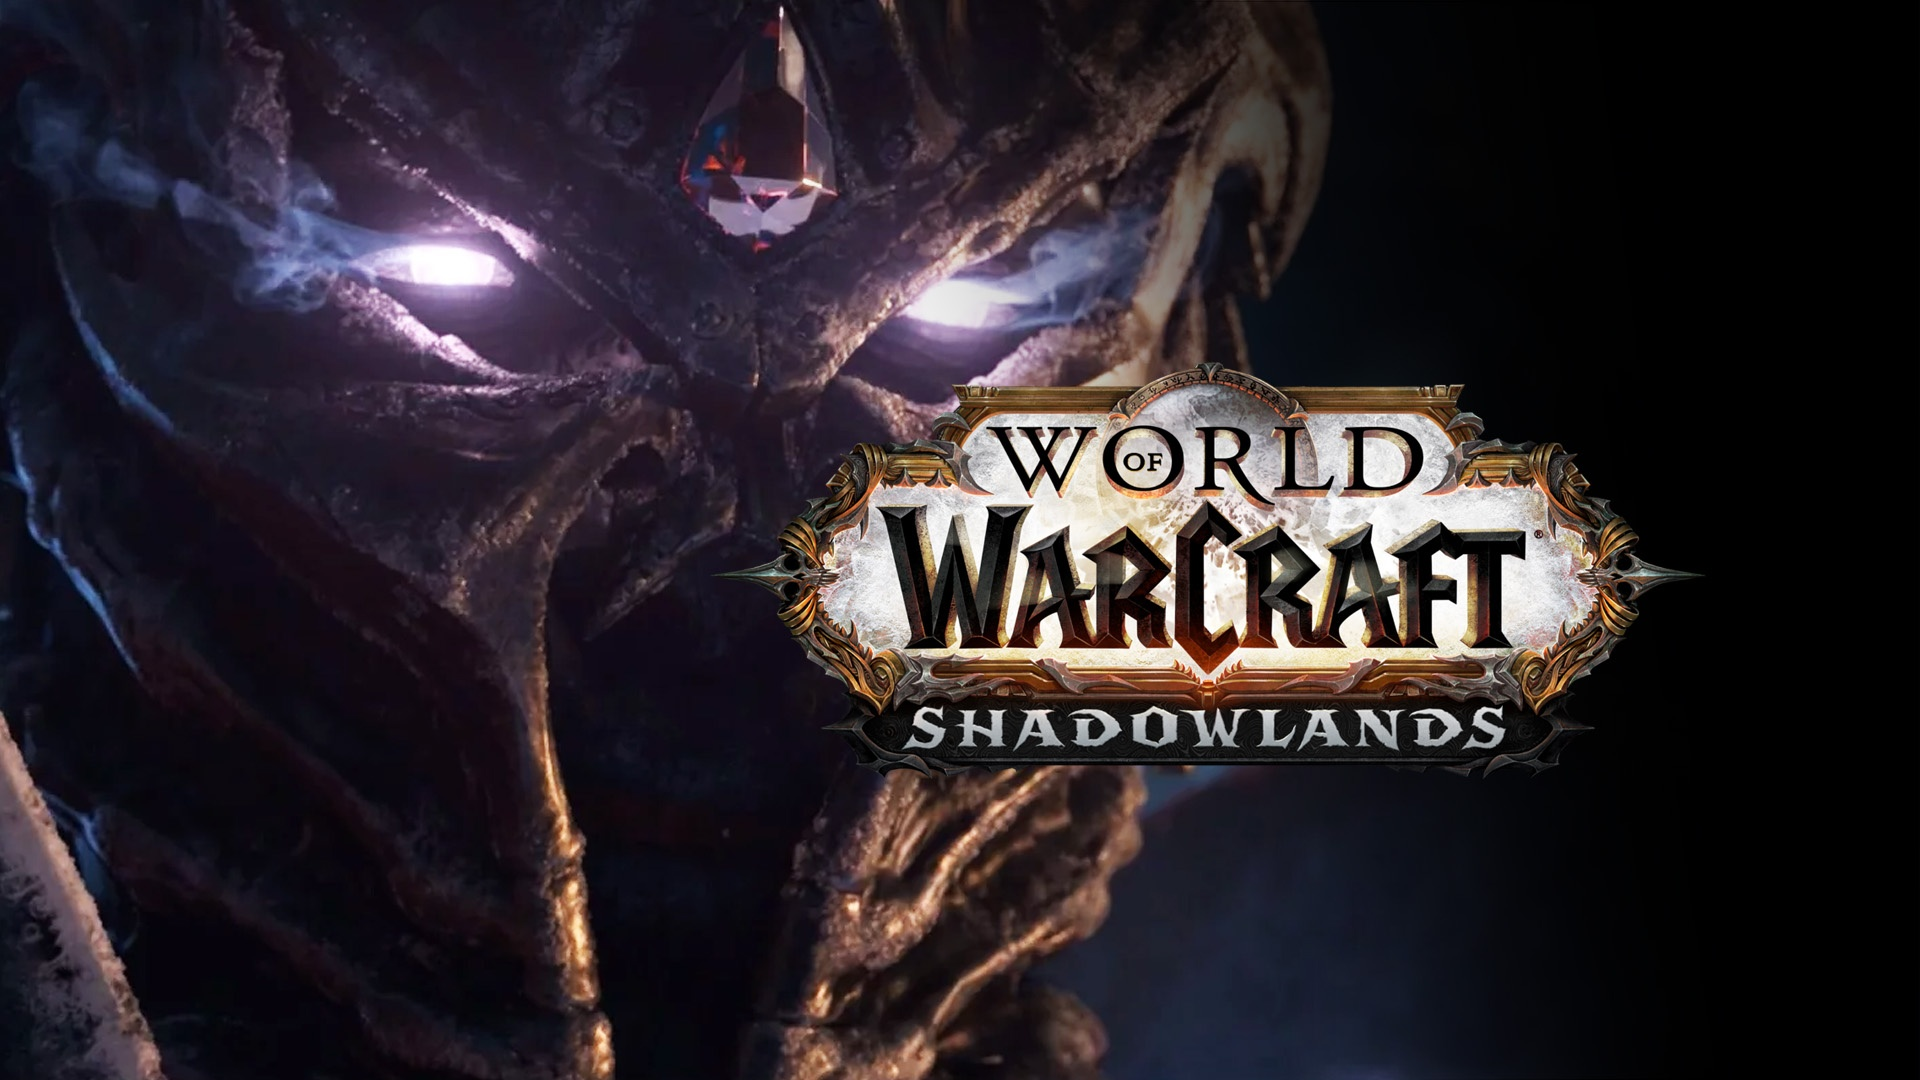 WOW World of Warcraft Shadowlands